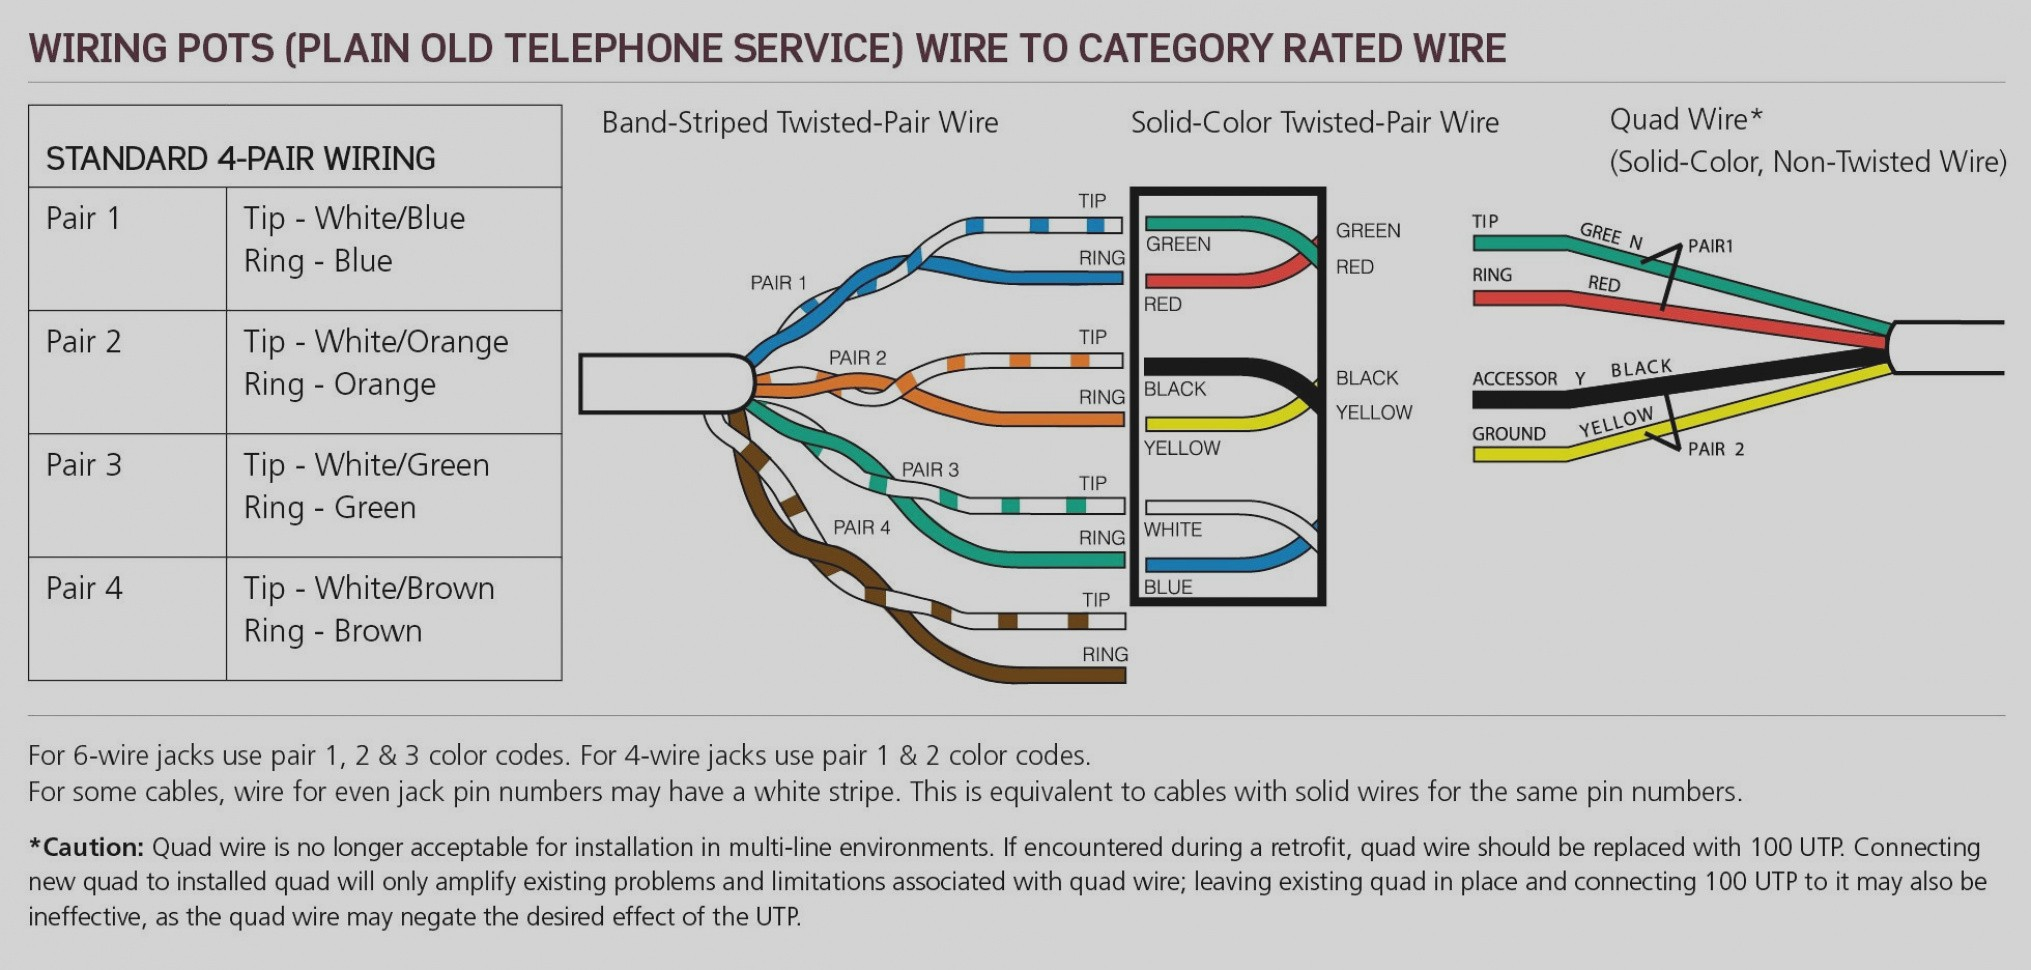 Wiring Rj45 Phone Cord - Wiring Diagrams Hubs - Cat 6 Wiring Diagram Rj45